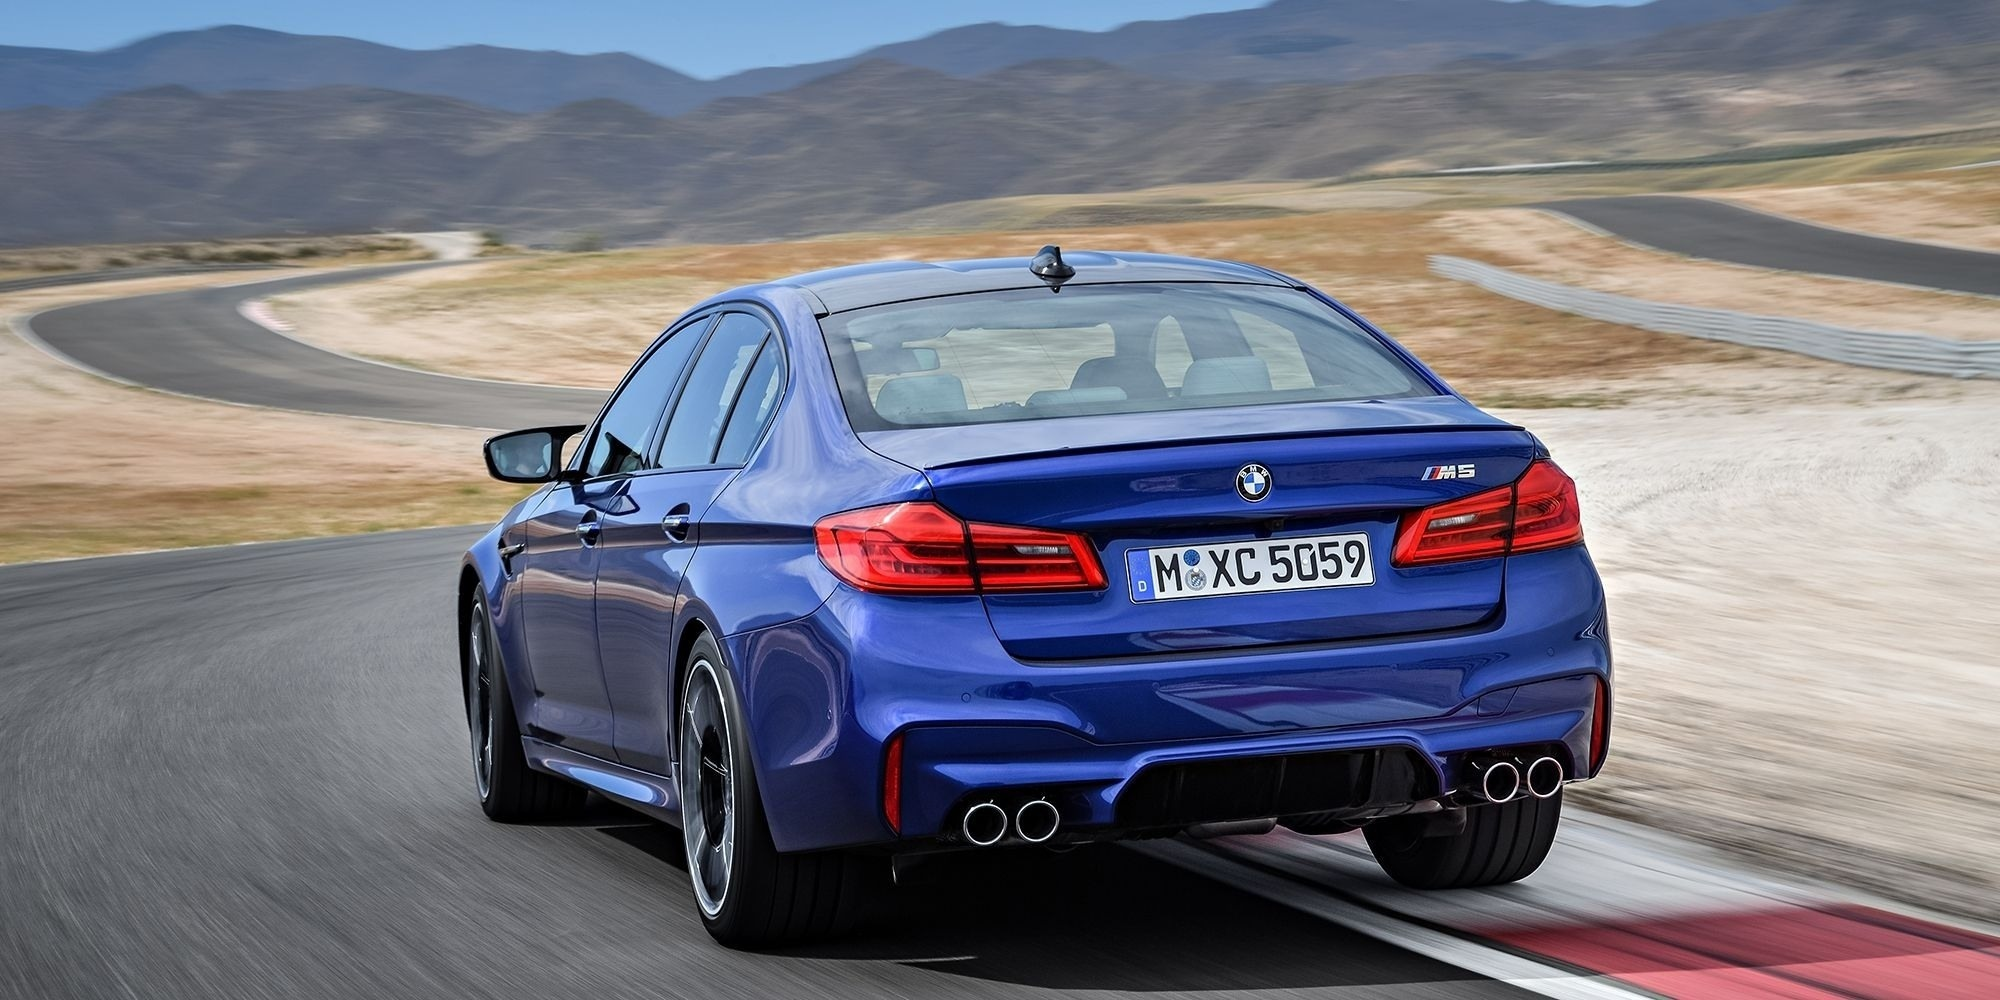 96 The Best 2020 BMW M5 Get New Engine System New Model and Performance